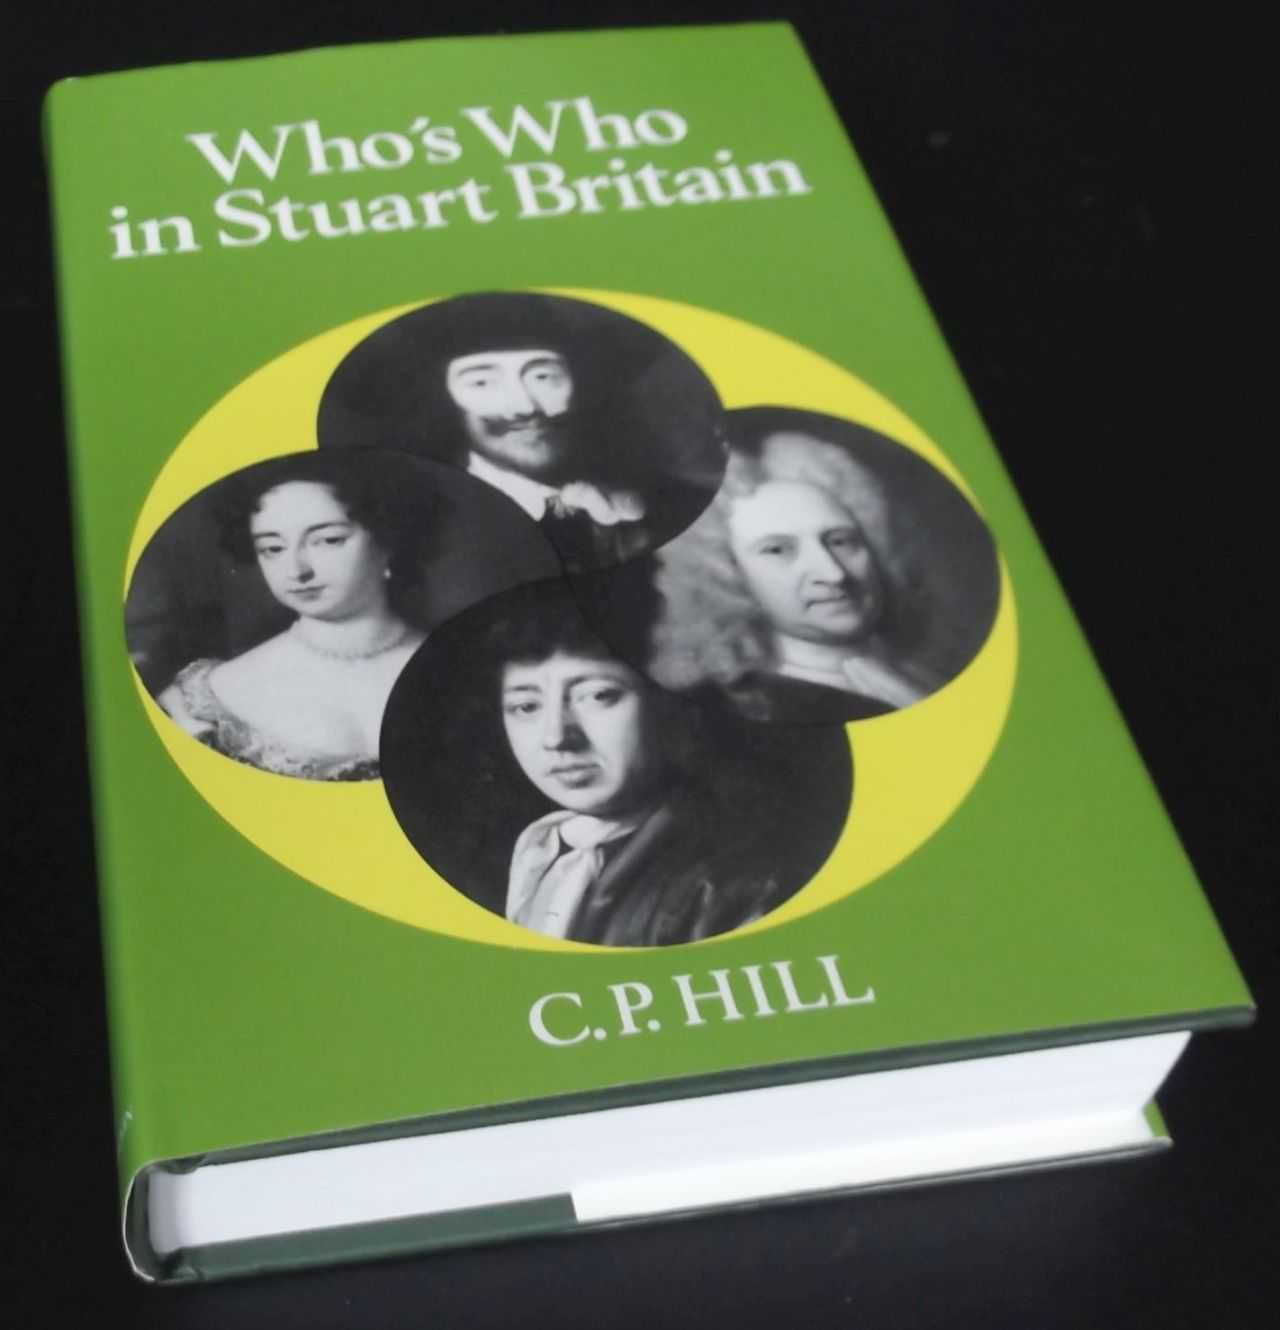 CHARLES PETER HILL - Who's Who in Stuart Britain